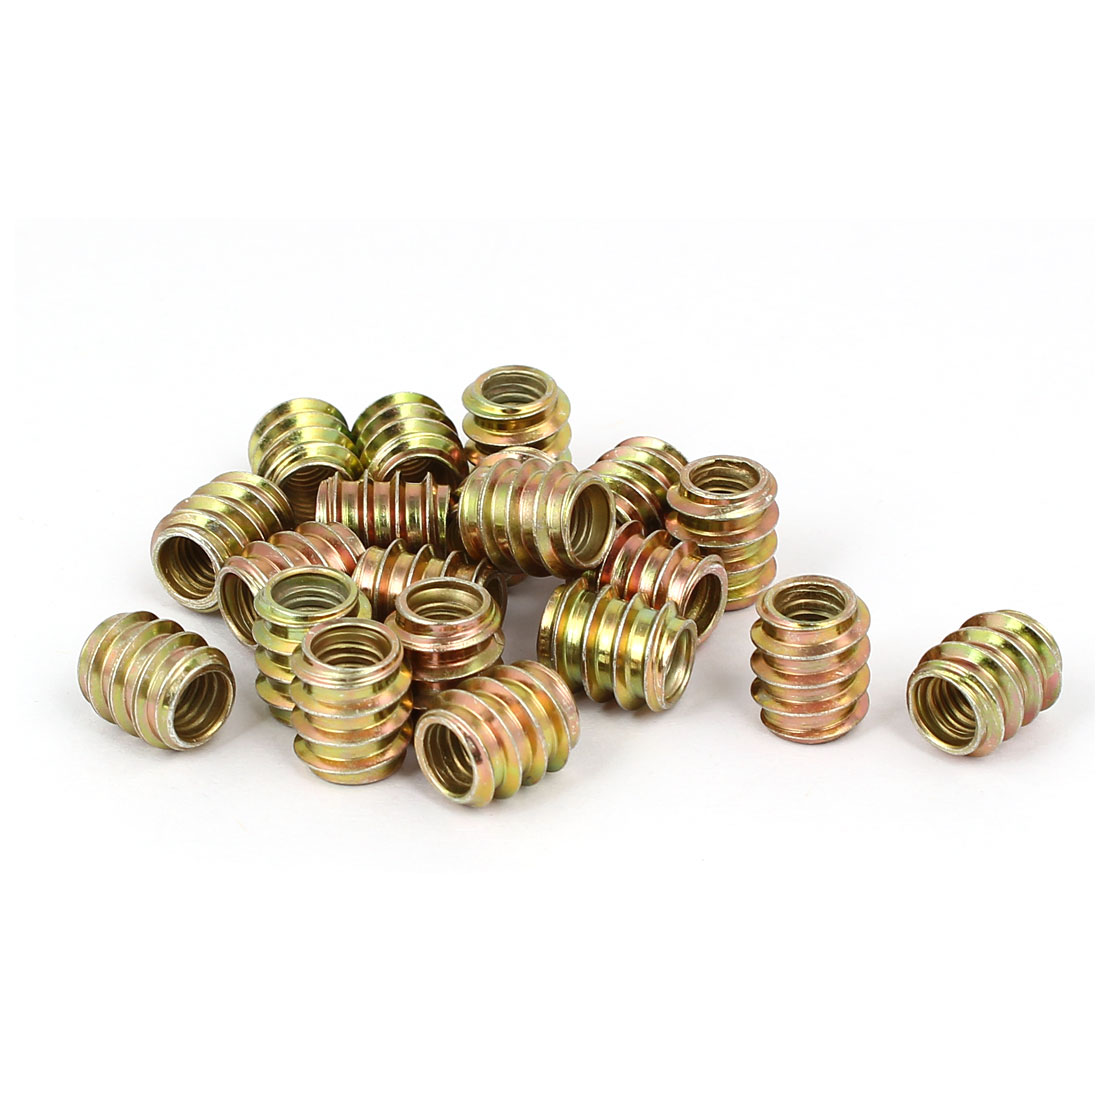 Wood Furniture Insert Fixing Screw E-Nut Bronze Tone M6 x 12mm 20pcs